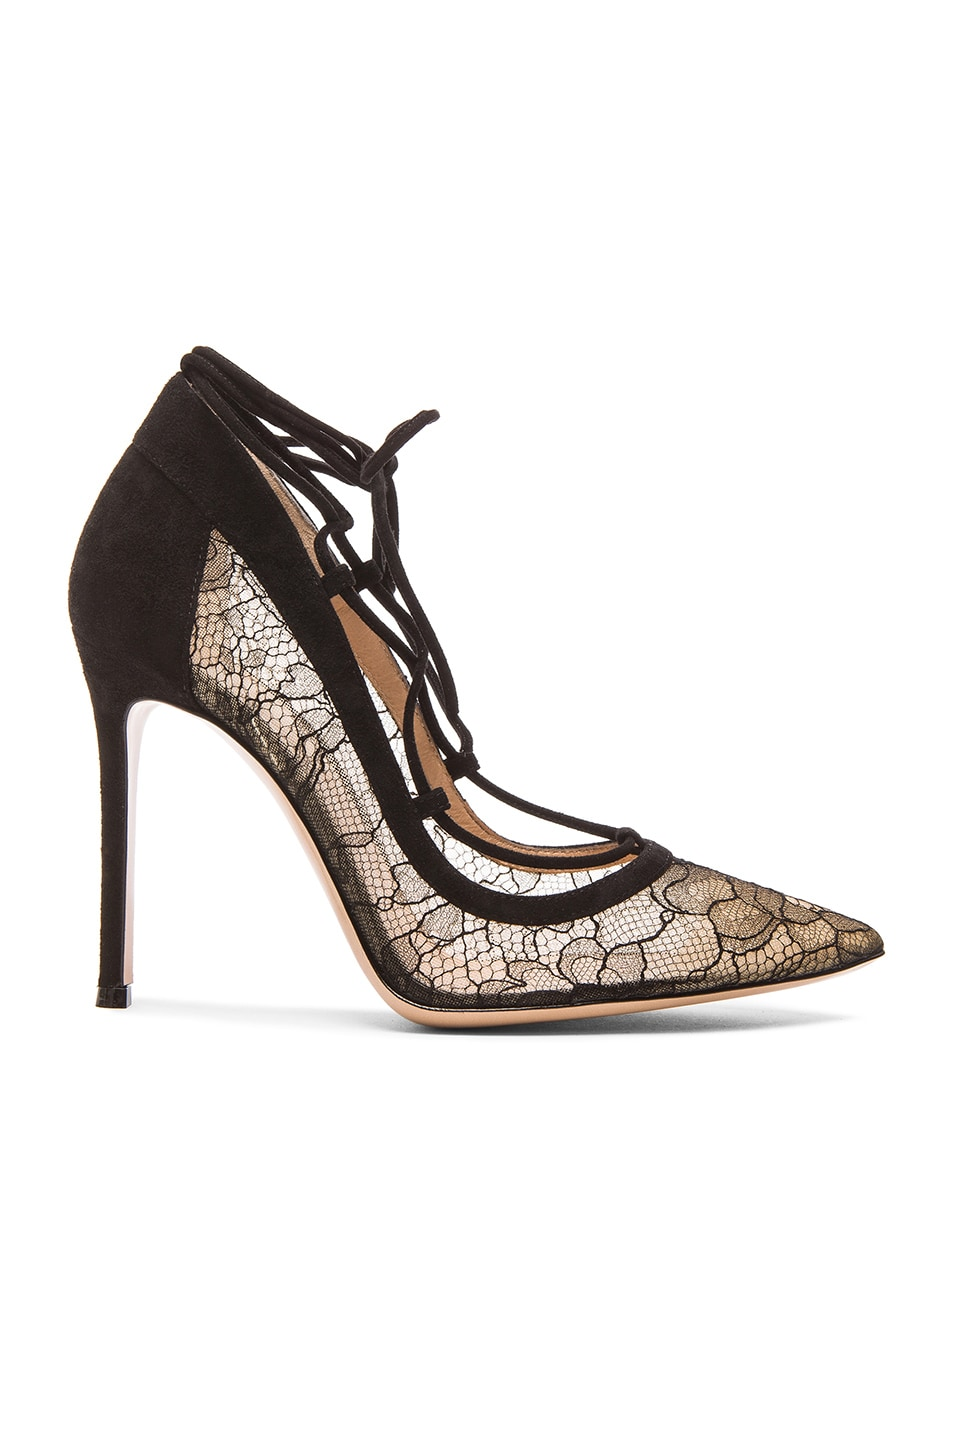 77ae1a6fc5e0 Image 1 of Gianvito Rossi Lace   Leather Femi Lace Up Pumps in Black